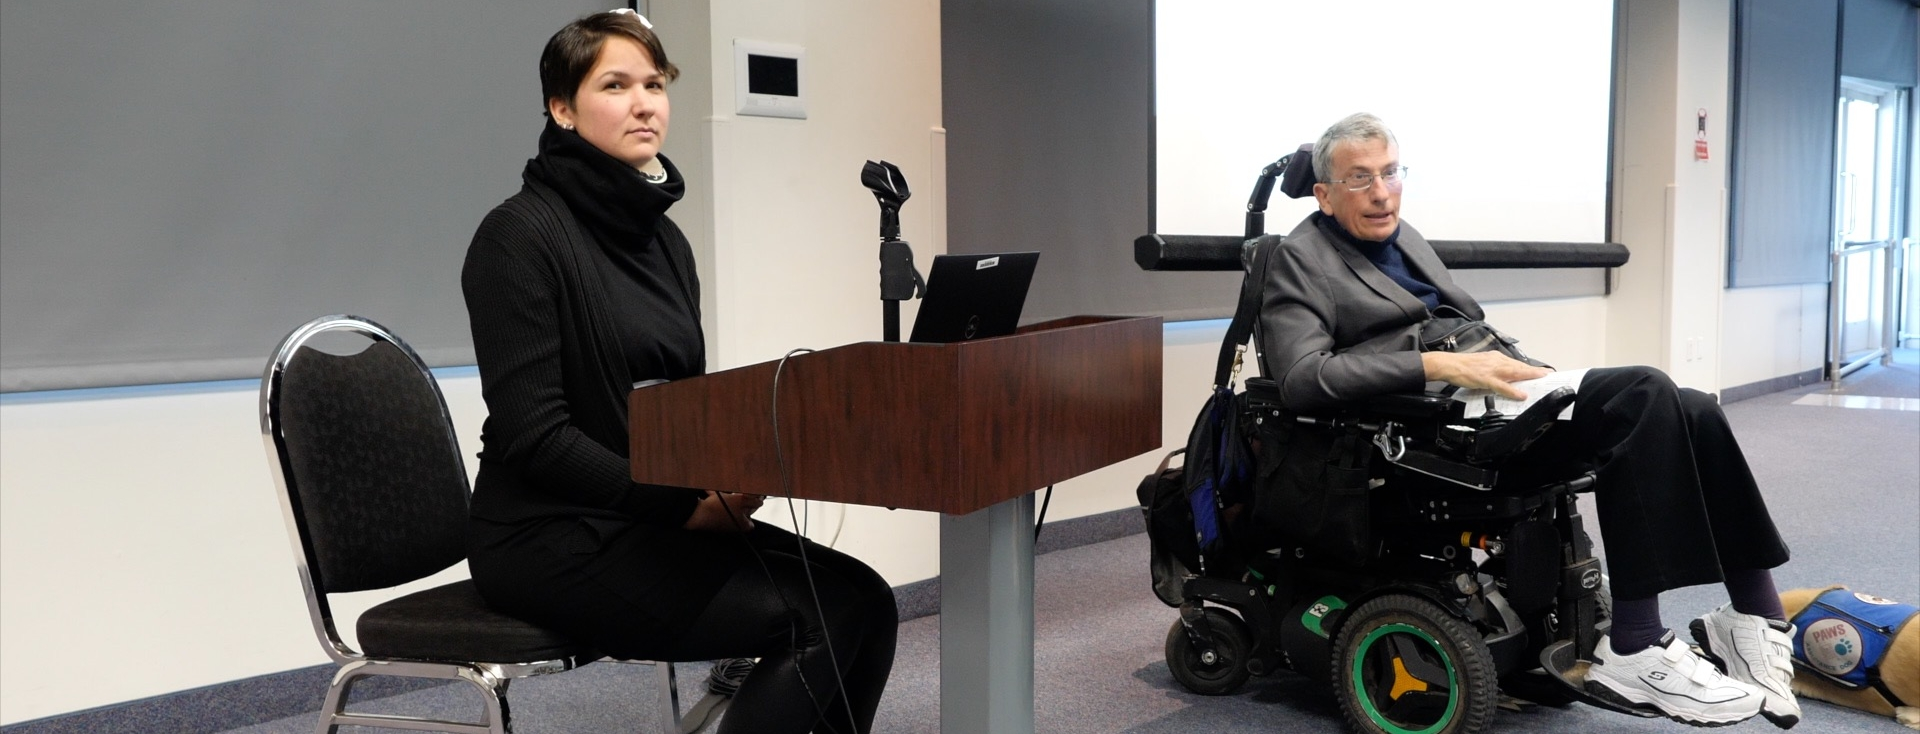 Karina, who has short brown hair sits at a podium listening to the audience. Next to her is a man with glasses in a wheelchair with a service dog next to him.